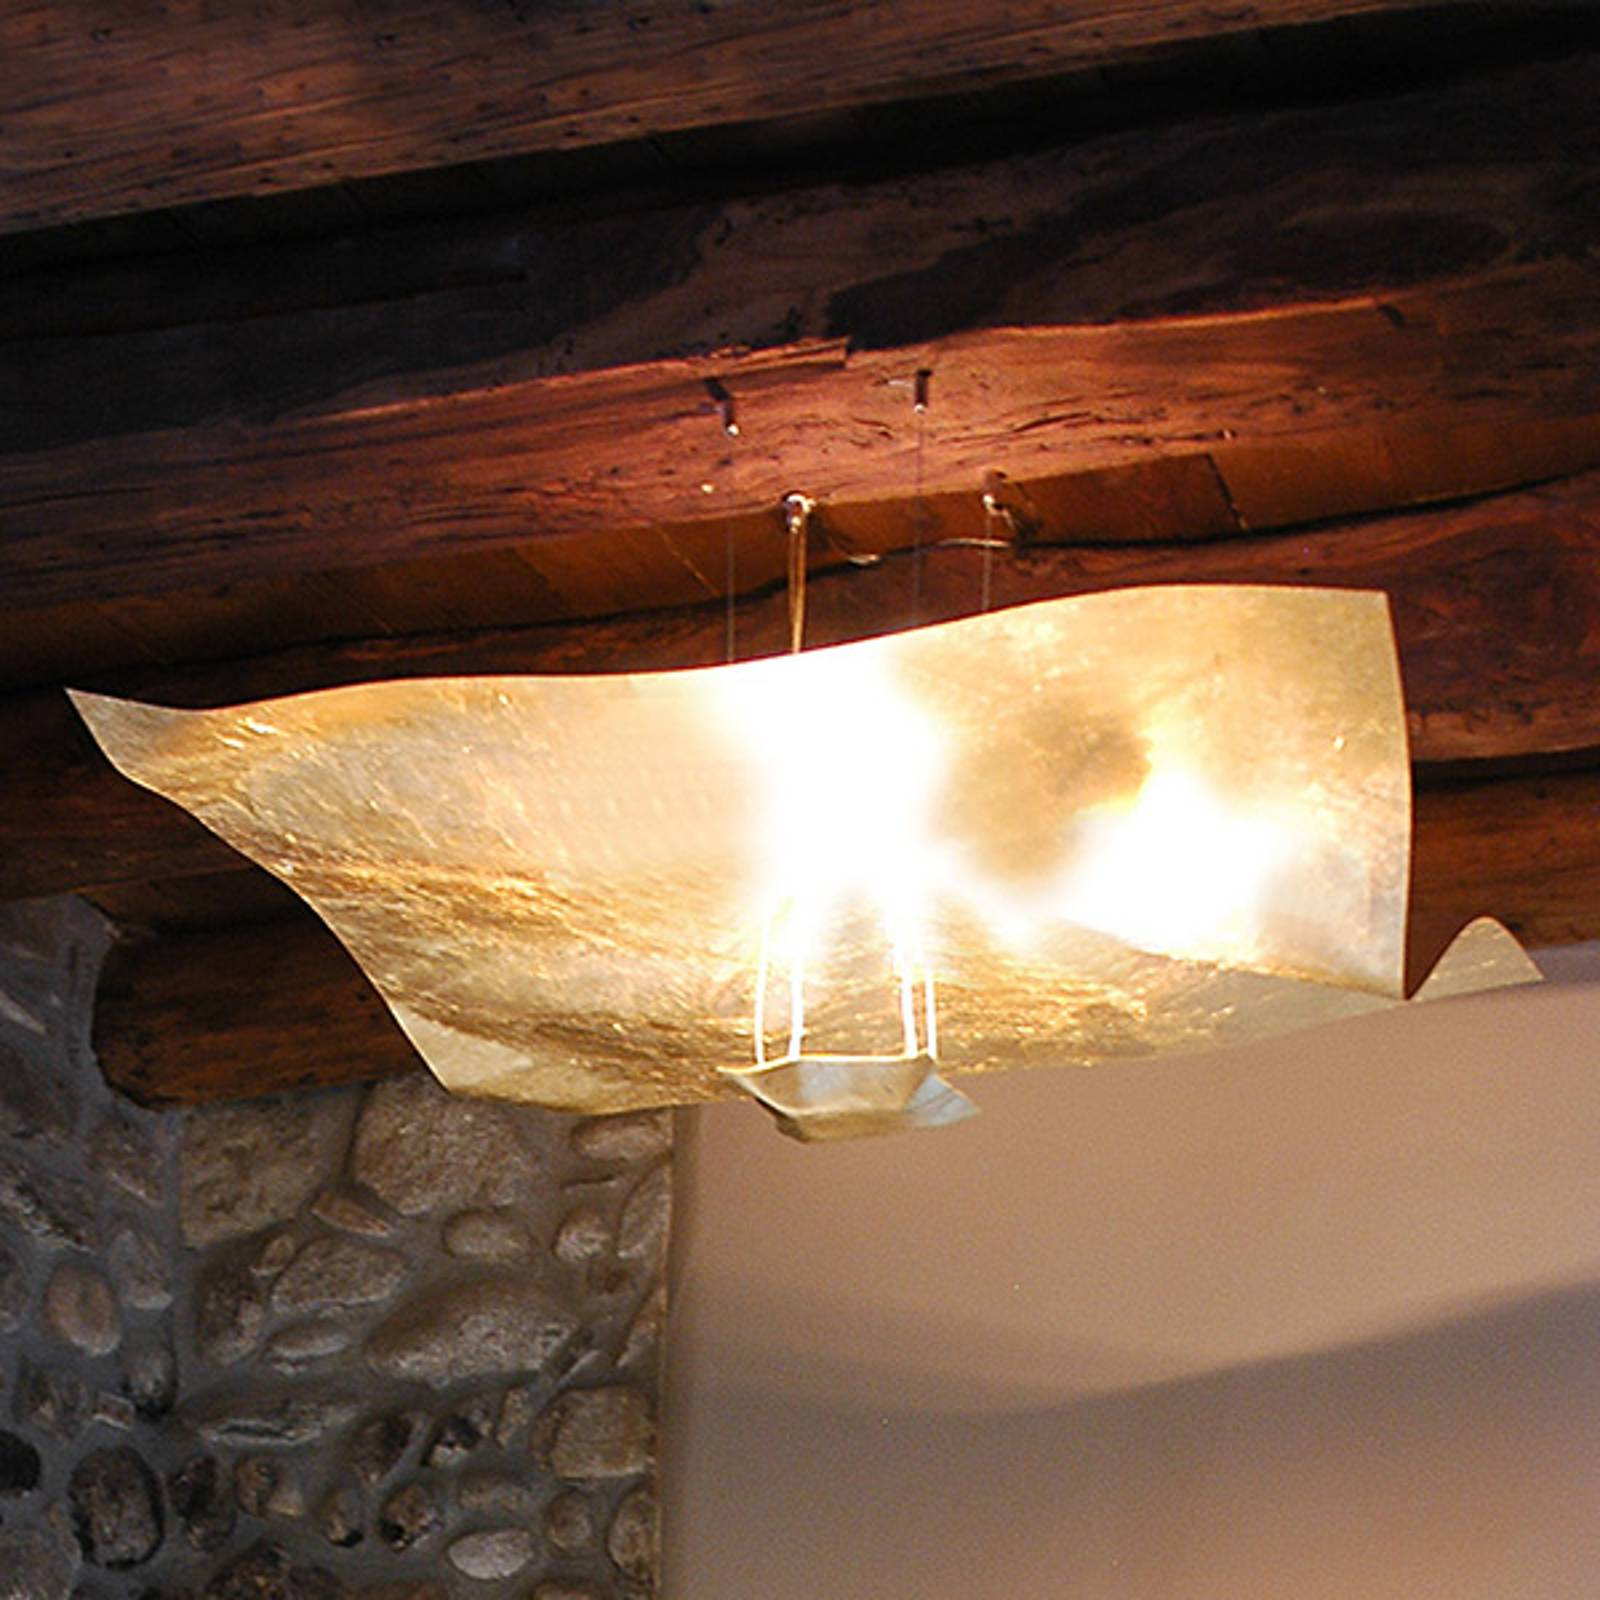 Knikerboker Crash gold hanging light 100 cm from Knikerboker